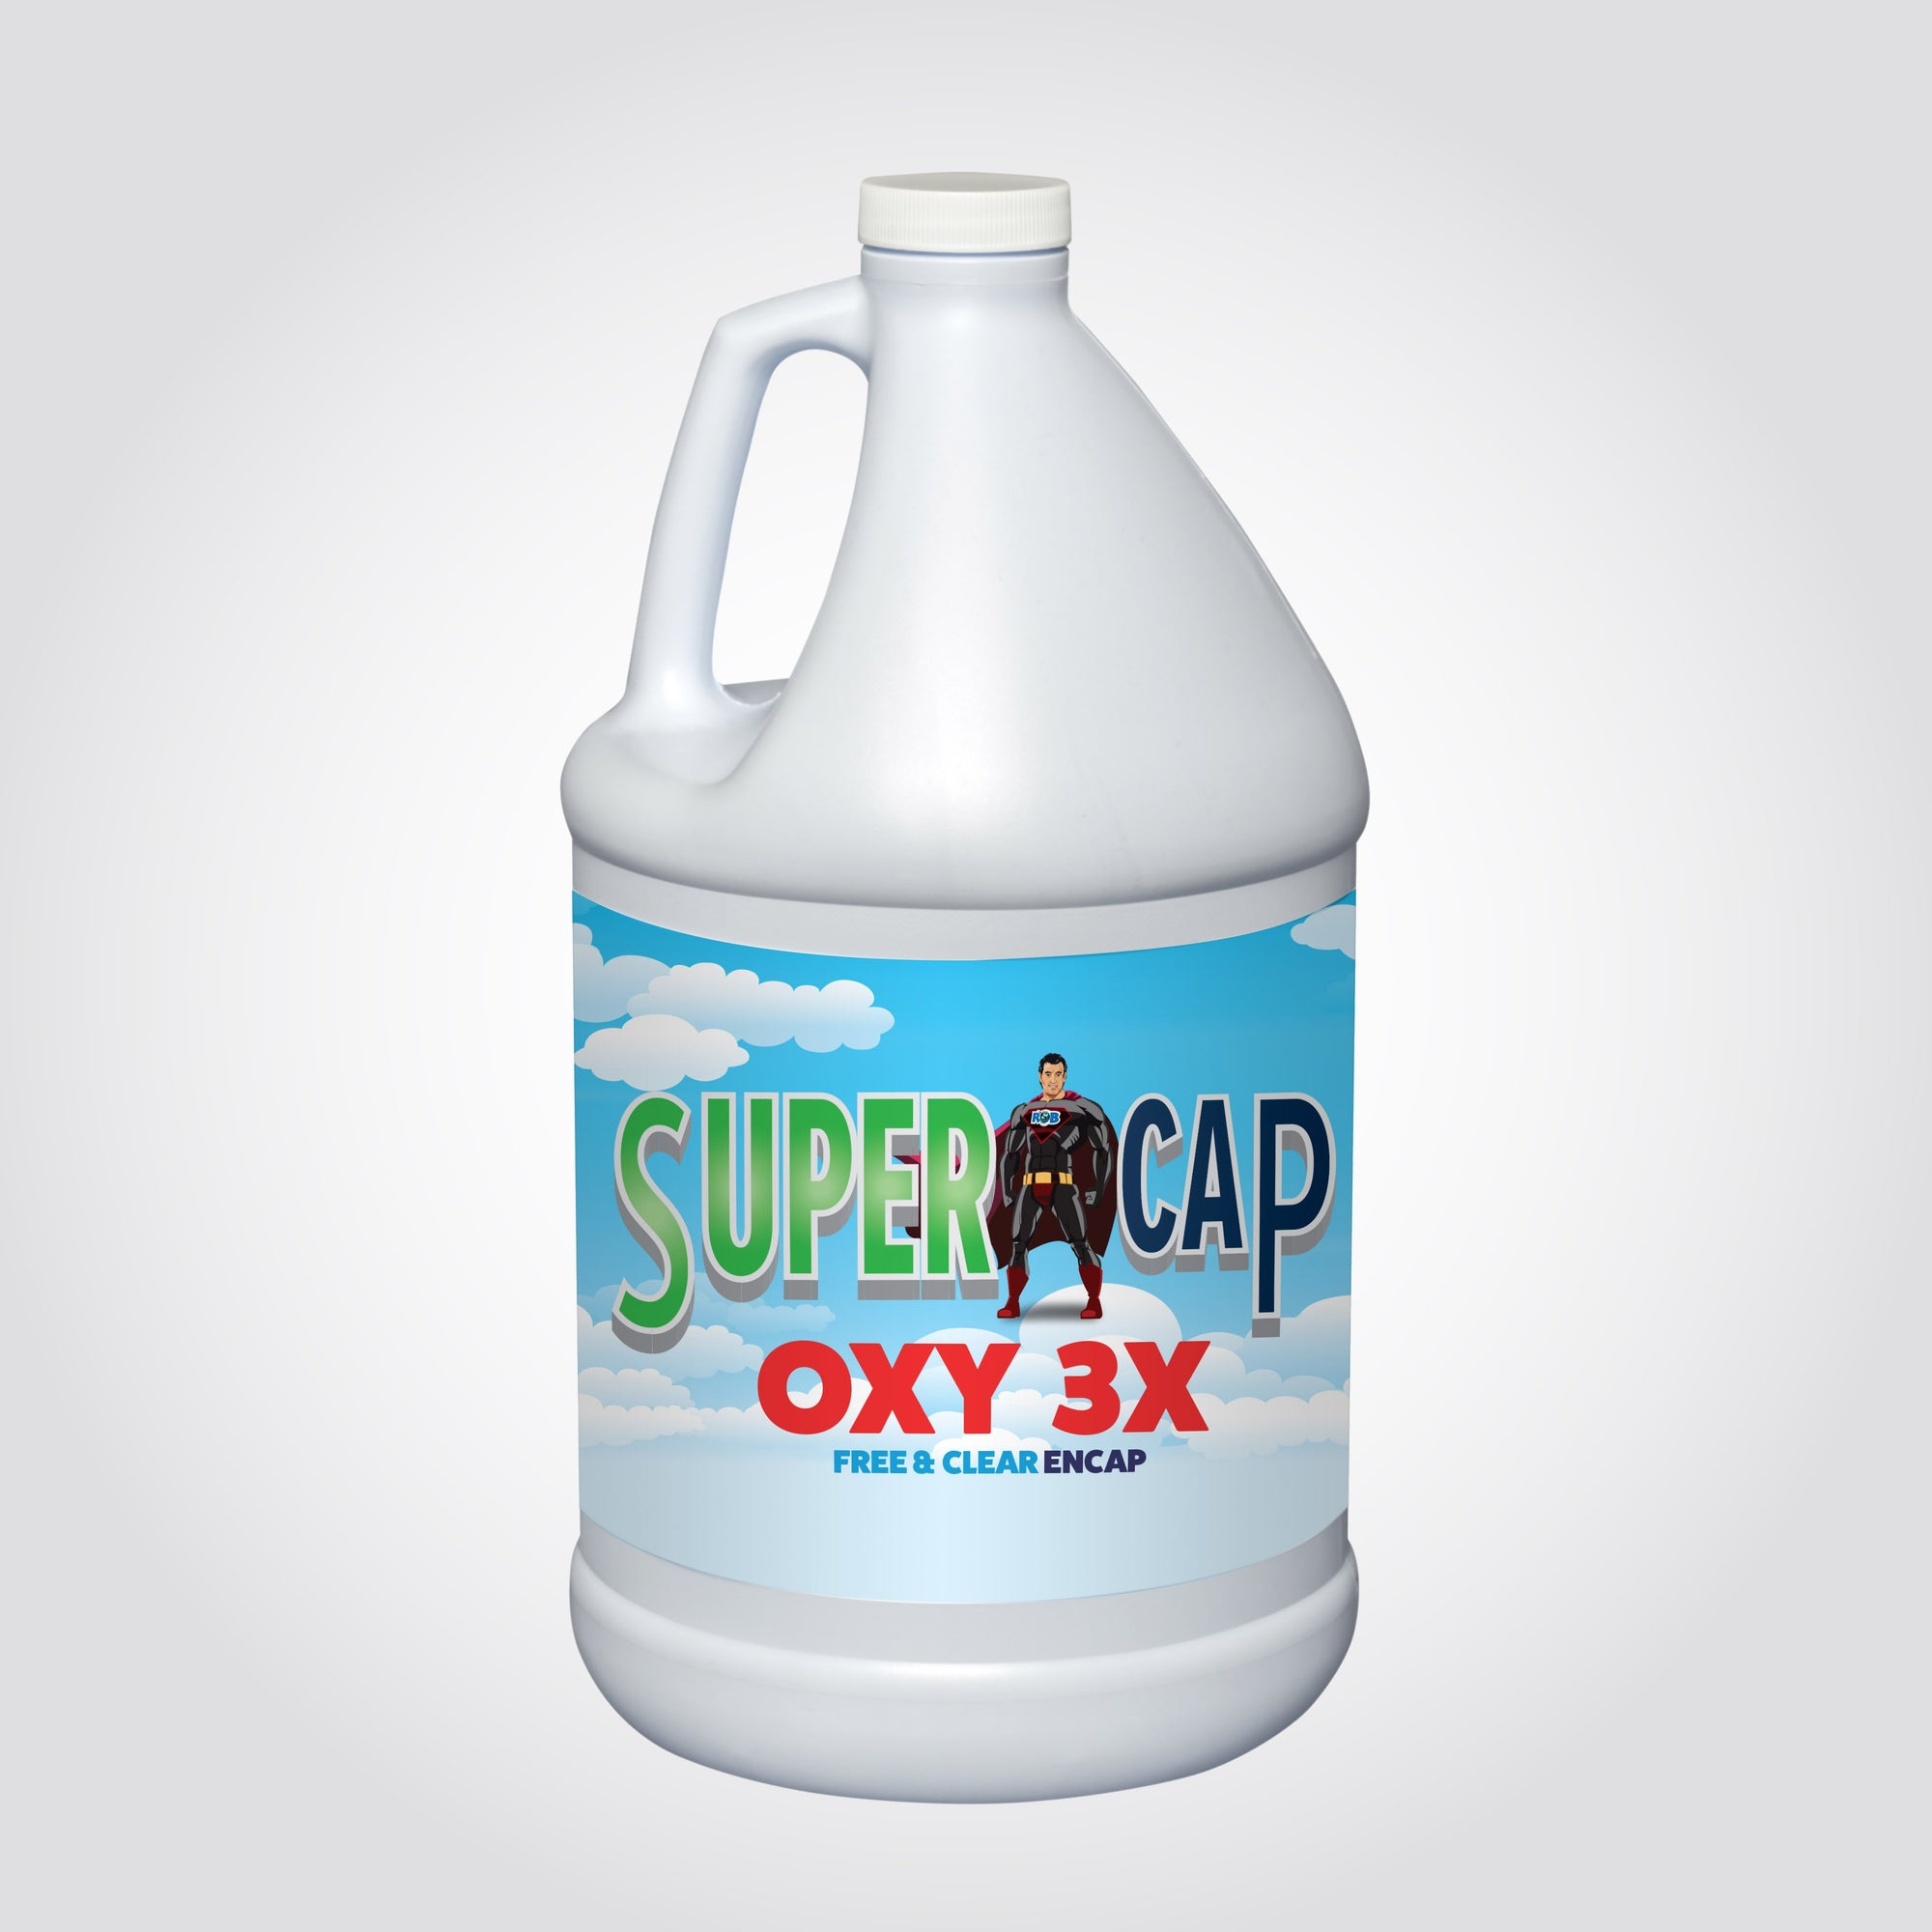 SuperCap Oxy X 3 Encapsulation Cleaner